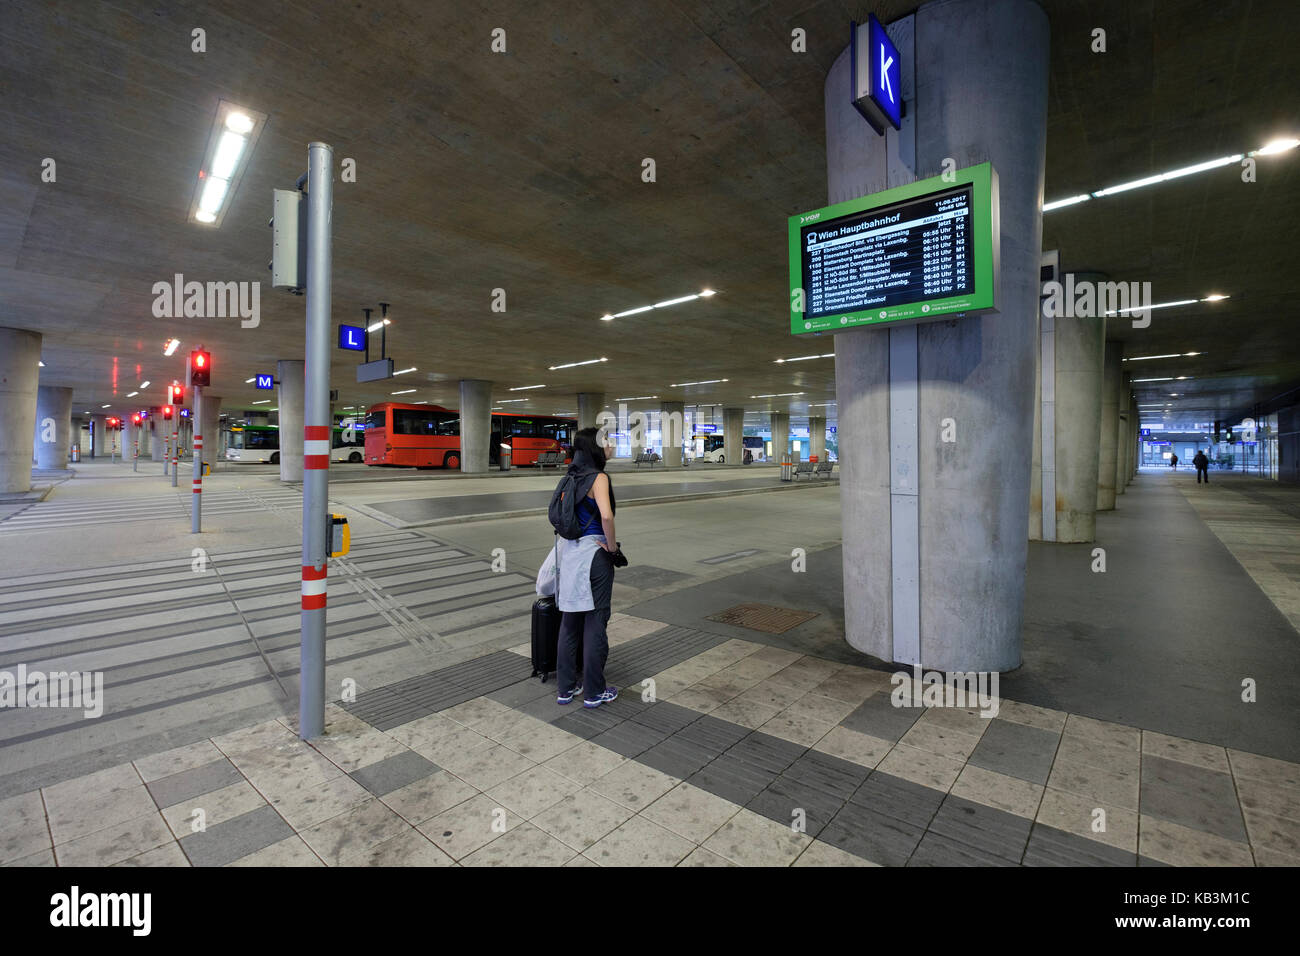 Passenger looking at schedule board while waiting for a bus at Vienna Central Station, Vienna, Austria, Europe - Stock Image